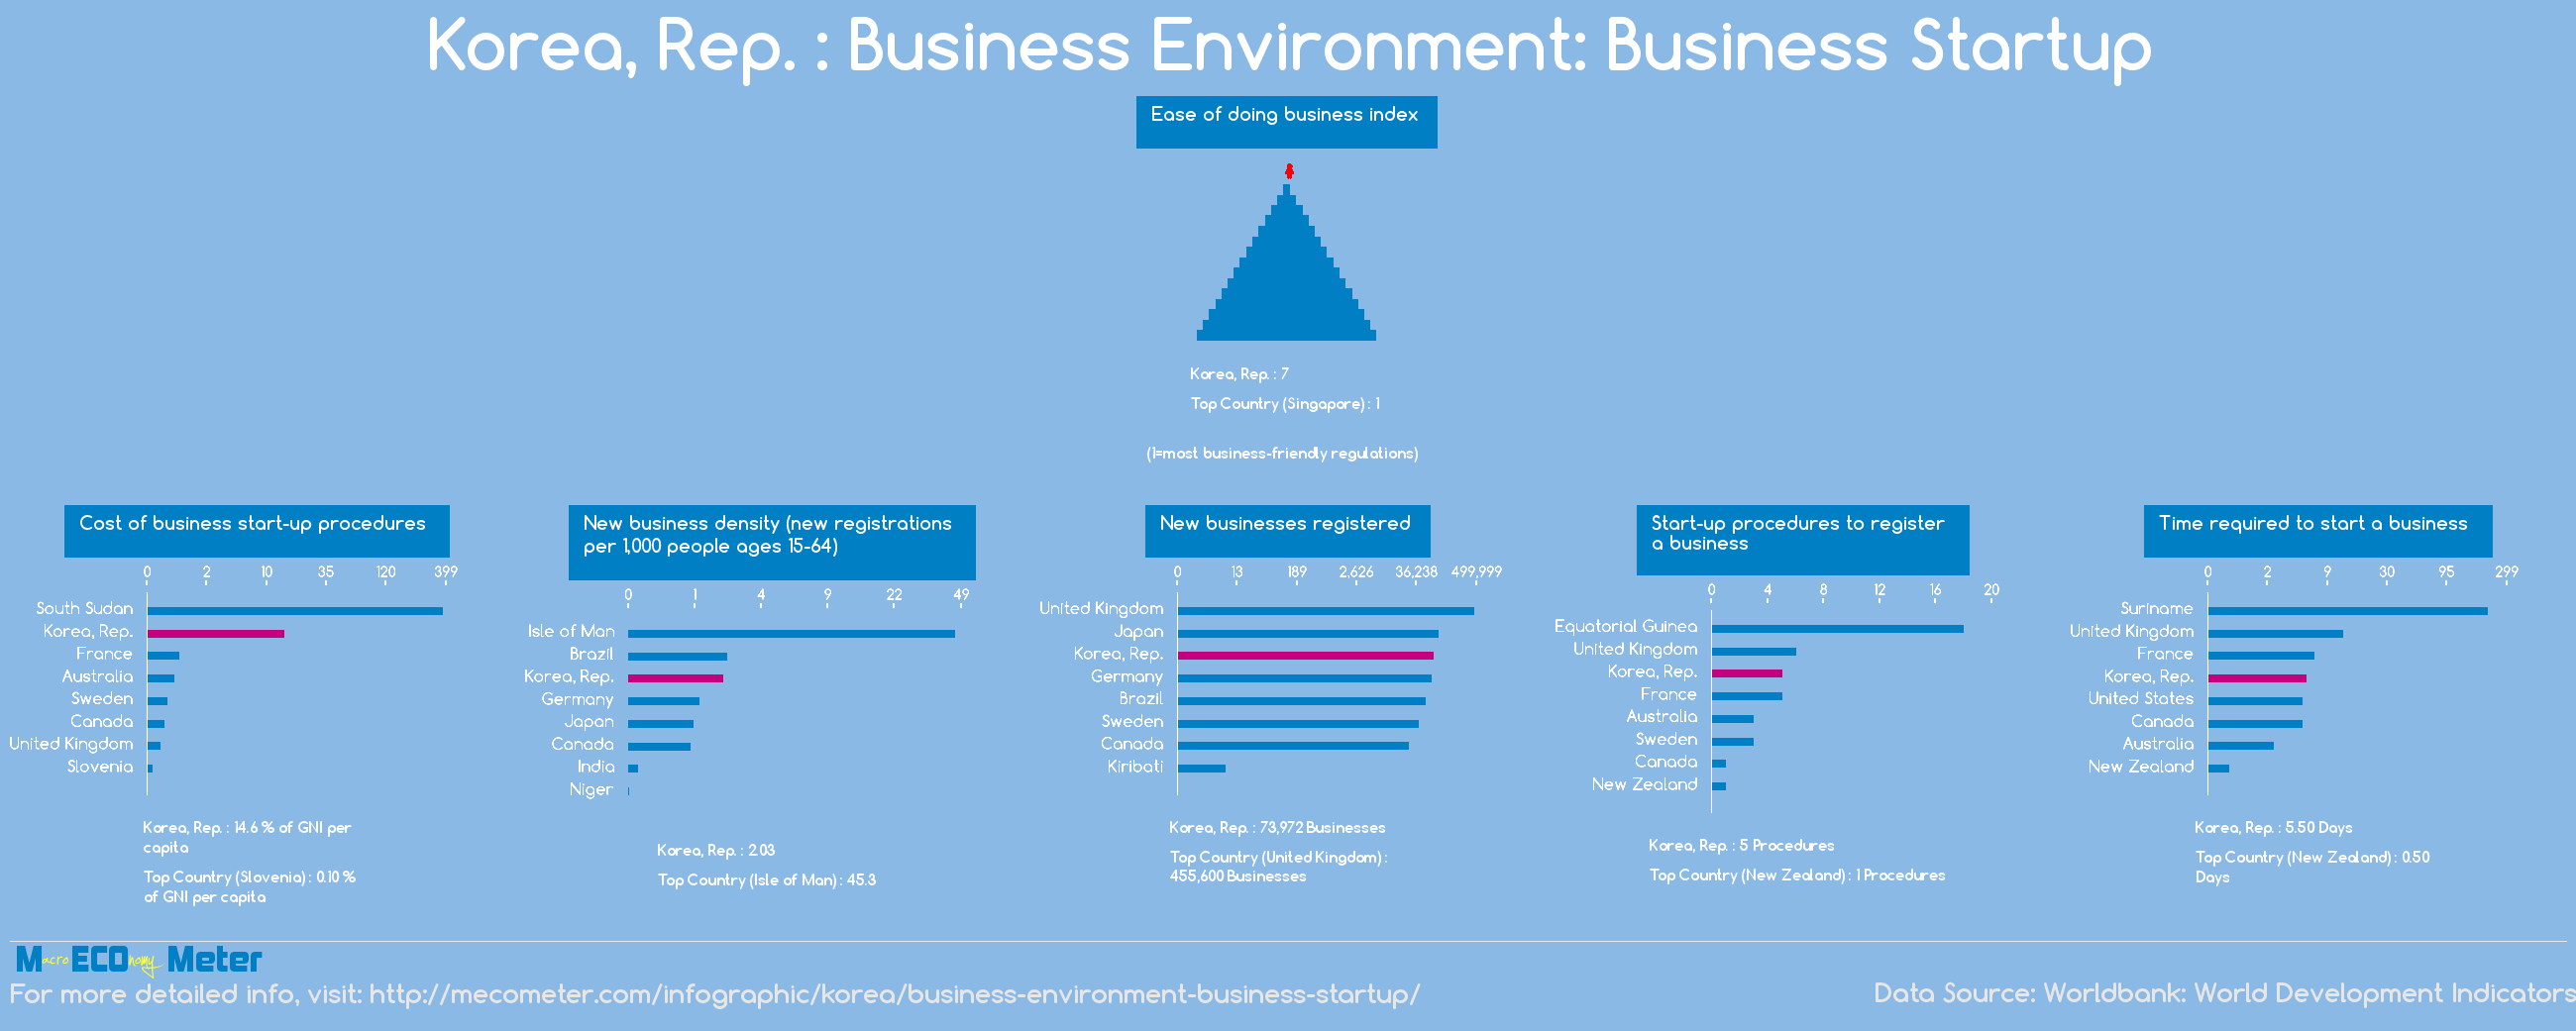 Korea : Business Environment: Business Startup